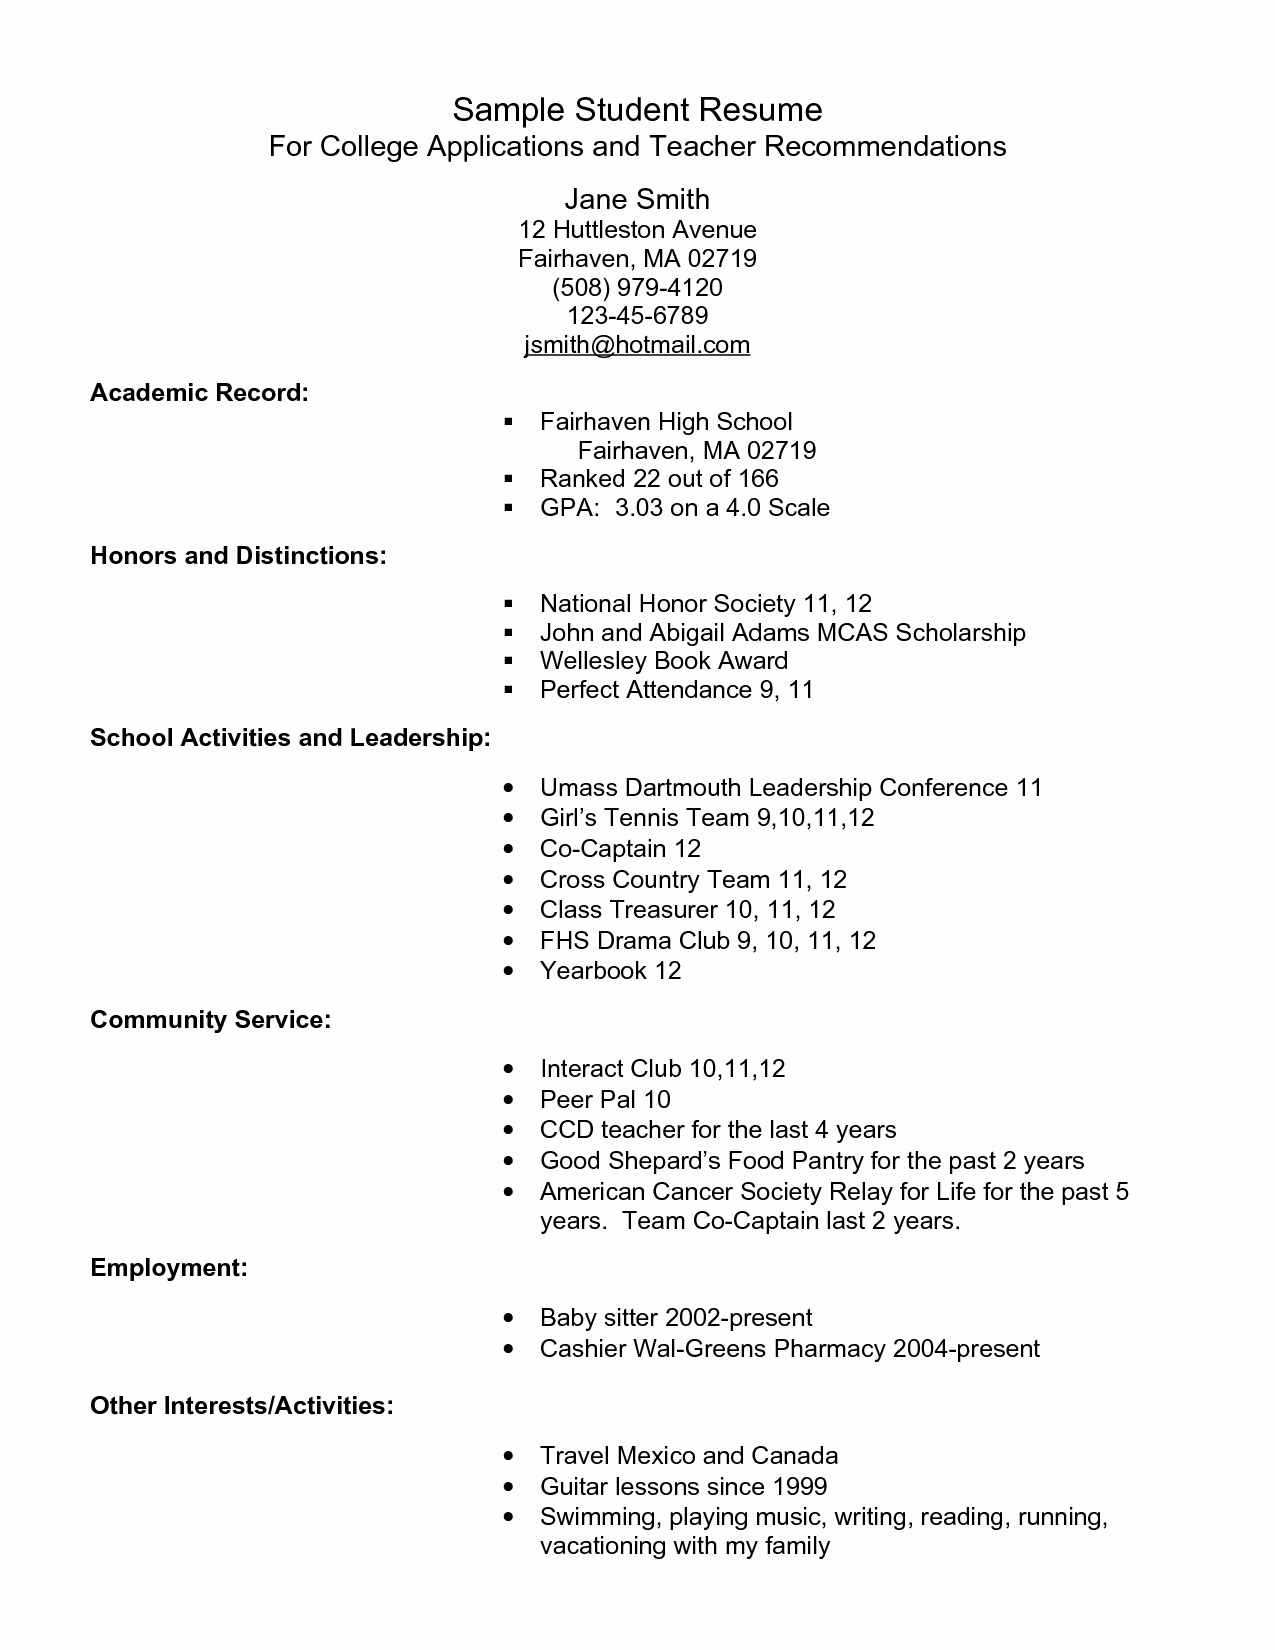 Example Of Academic Resume Fresh Example Resume for High School Students for College